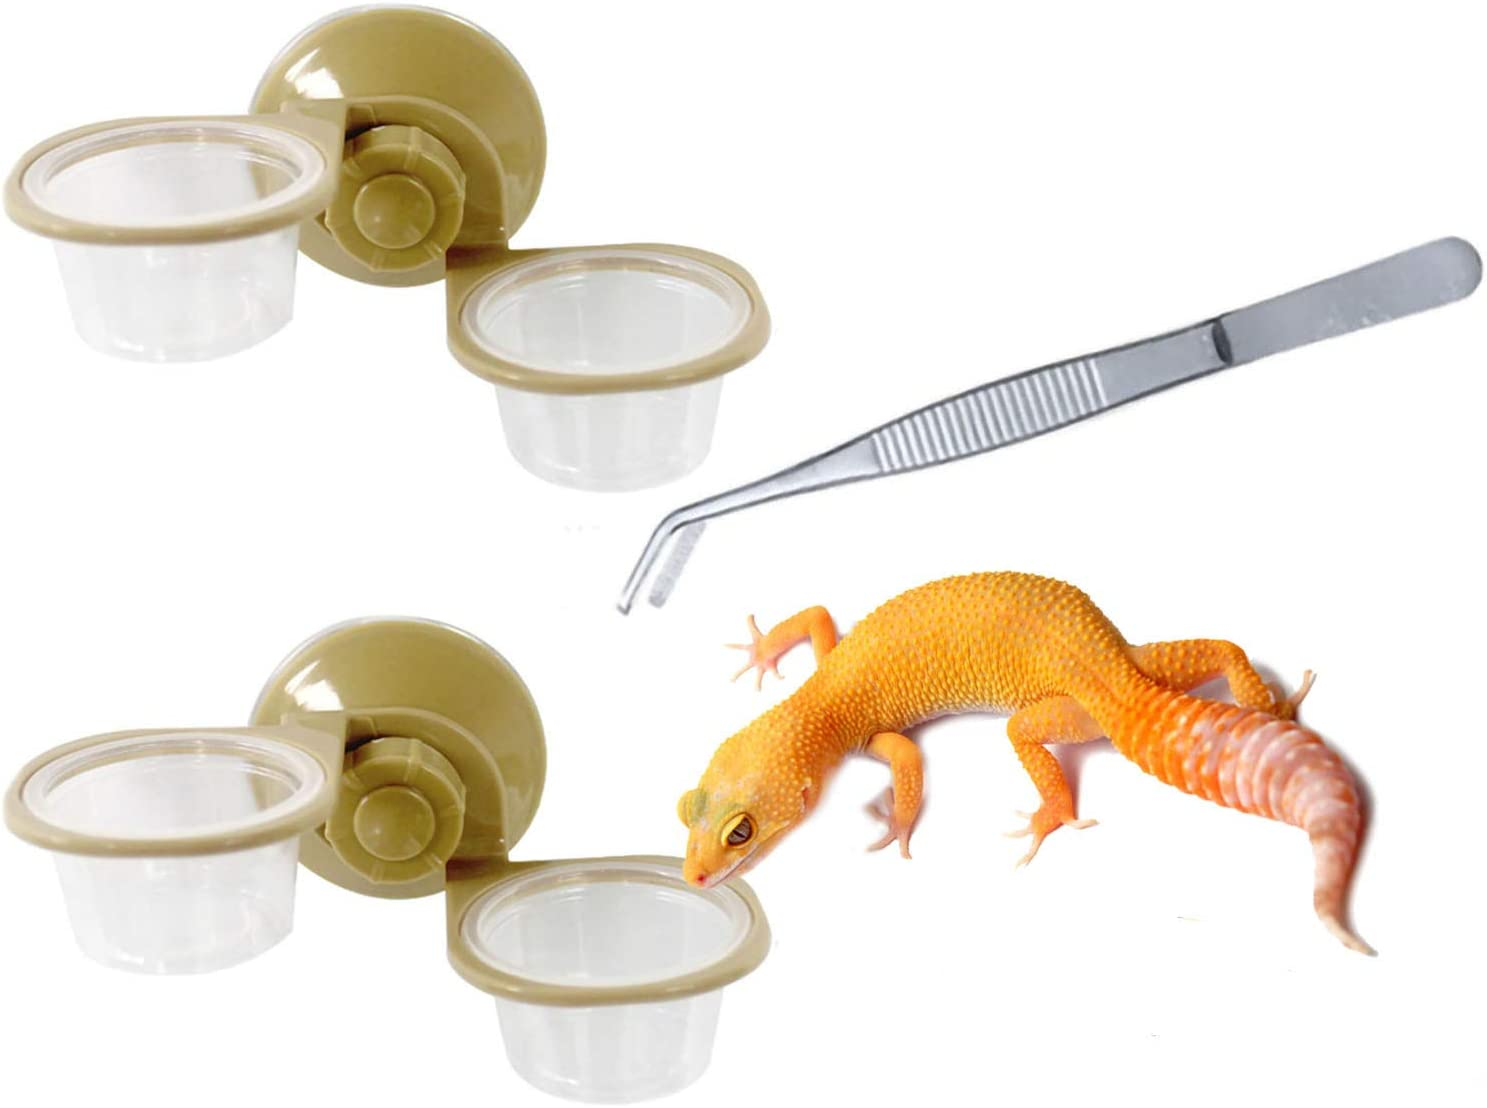 Hamiledyi Gecko Feeder Ledge,Reptile Feeding Cup with Suction Cup Food Dish for Snakes Lizards Spiders Chameleons Corn Snakes Iguanas,with Feeding Tongs